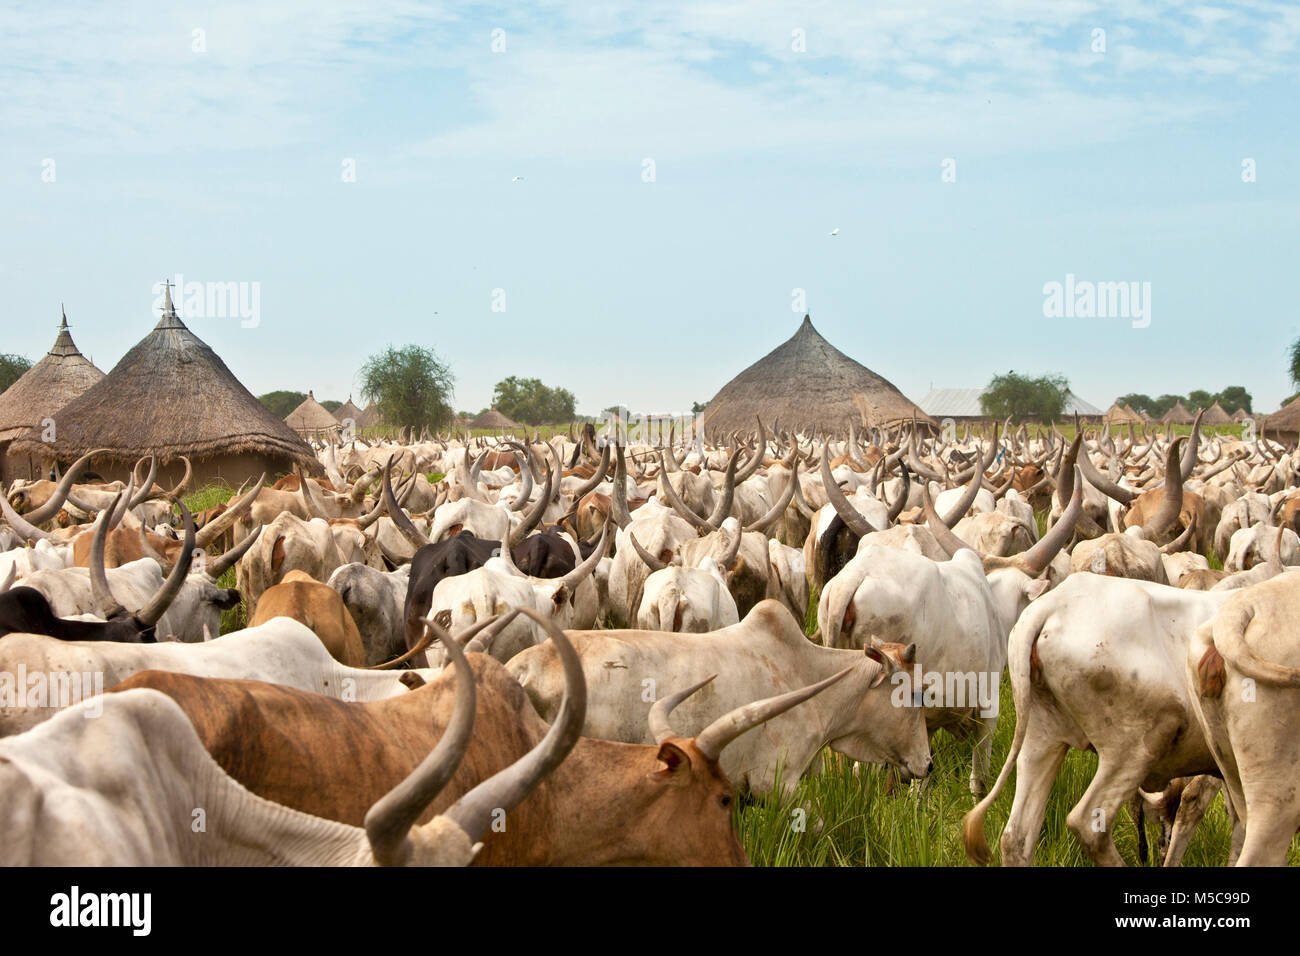 large cattle drive through a village in South Sudan - Stock Image